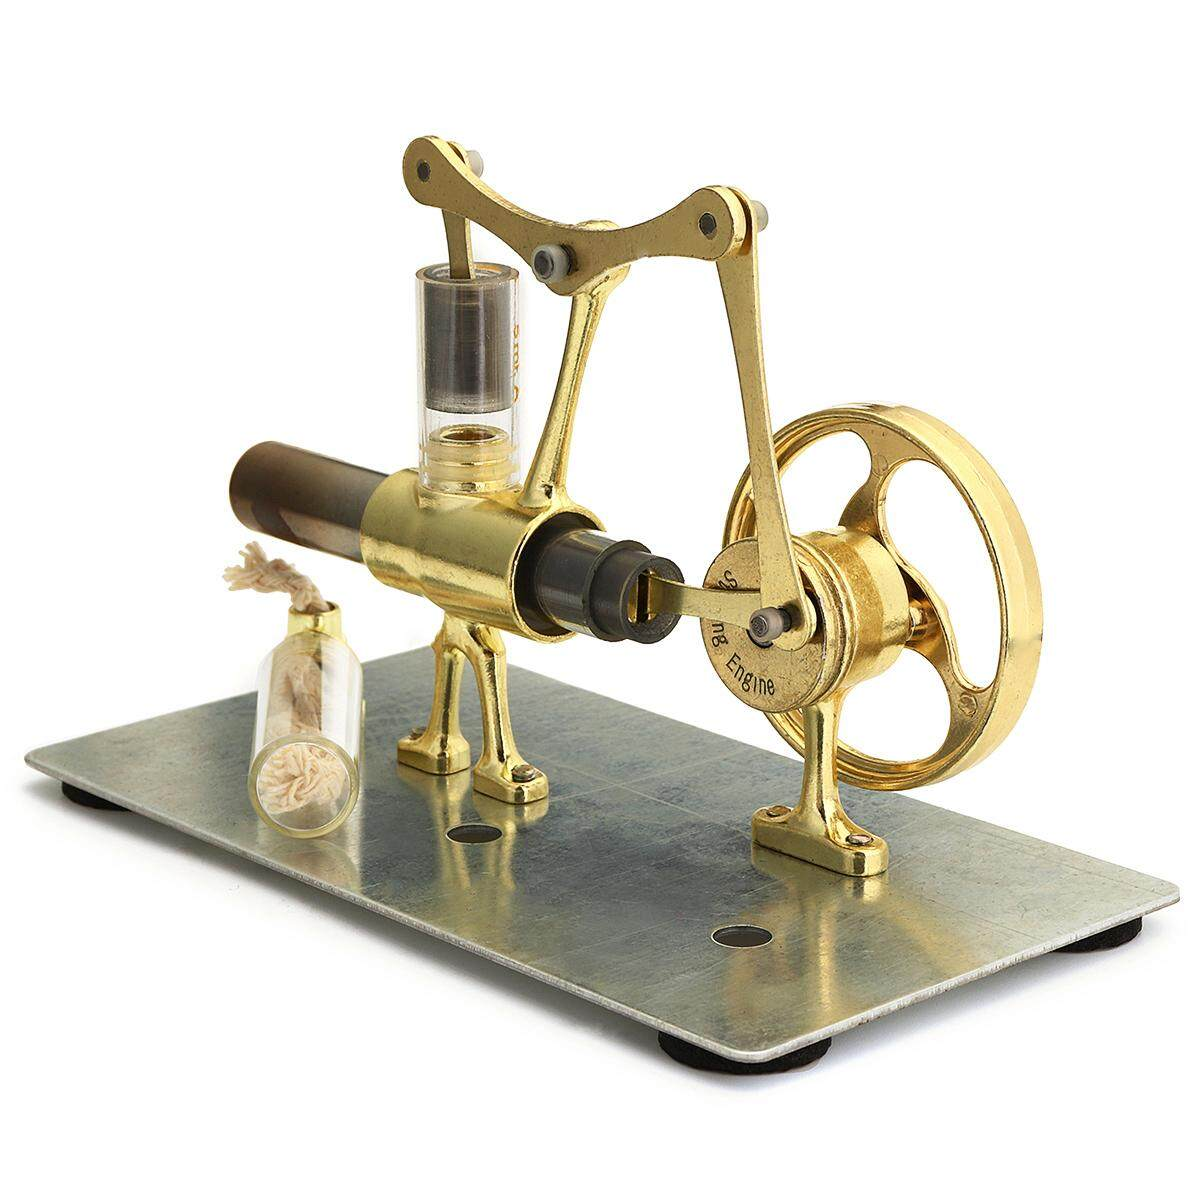 Hot Air Stirling Engine Model Power Generator Motor Educational Steam Power Toy - Intl By Channy.